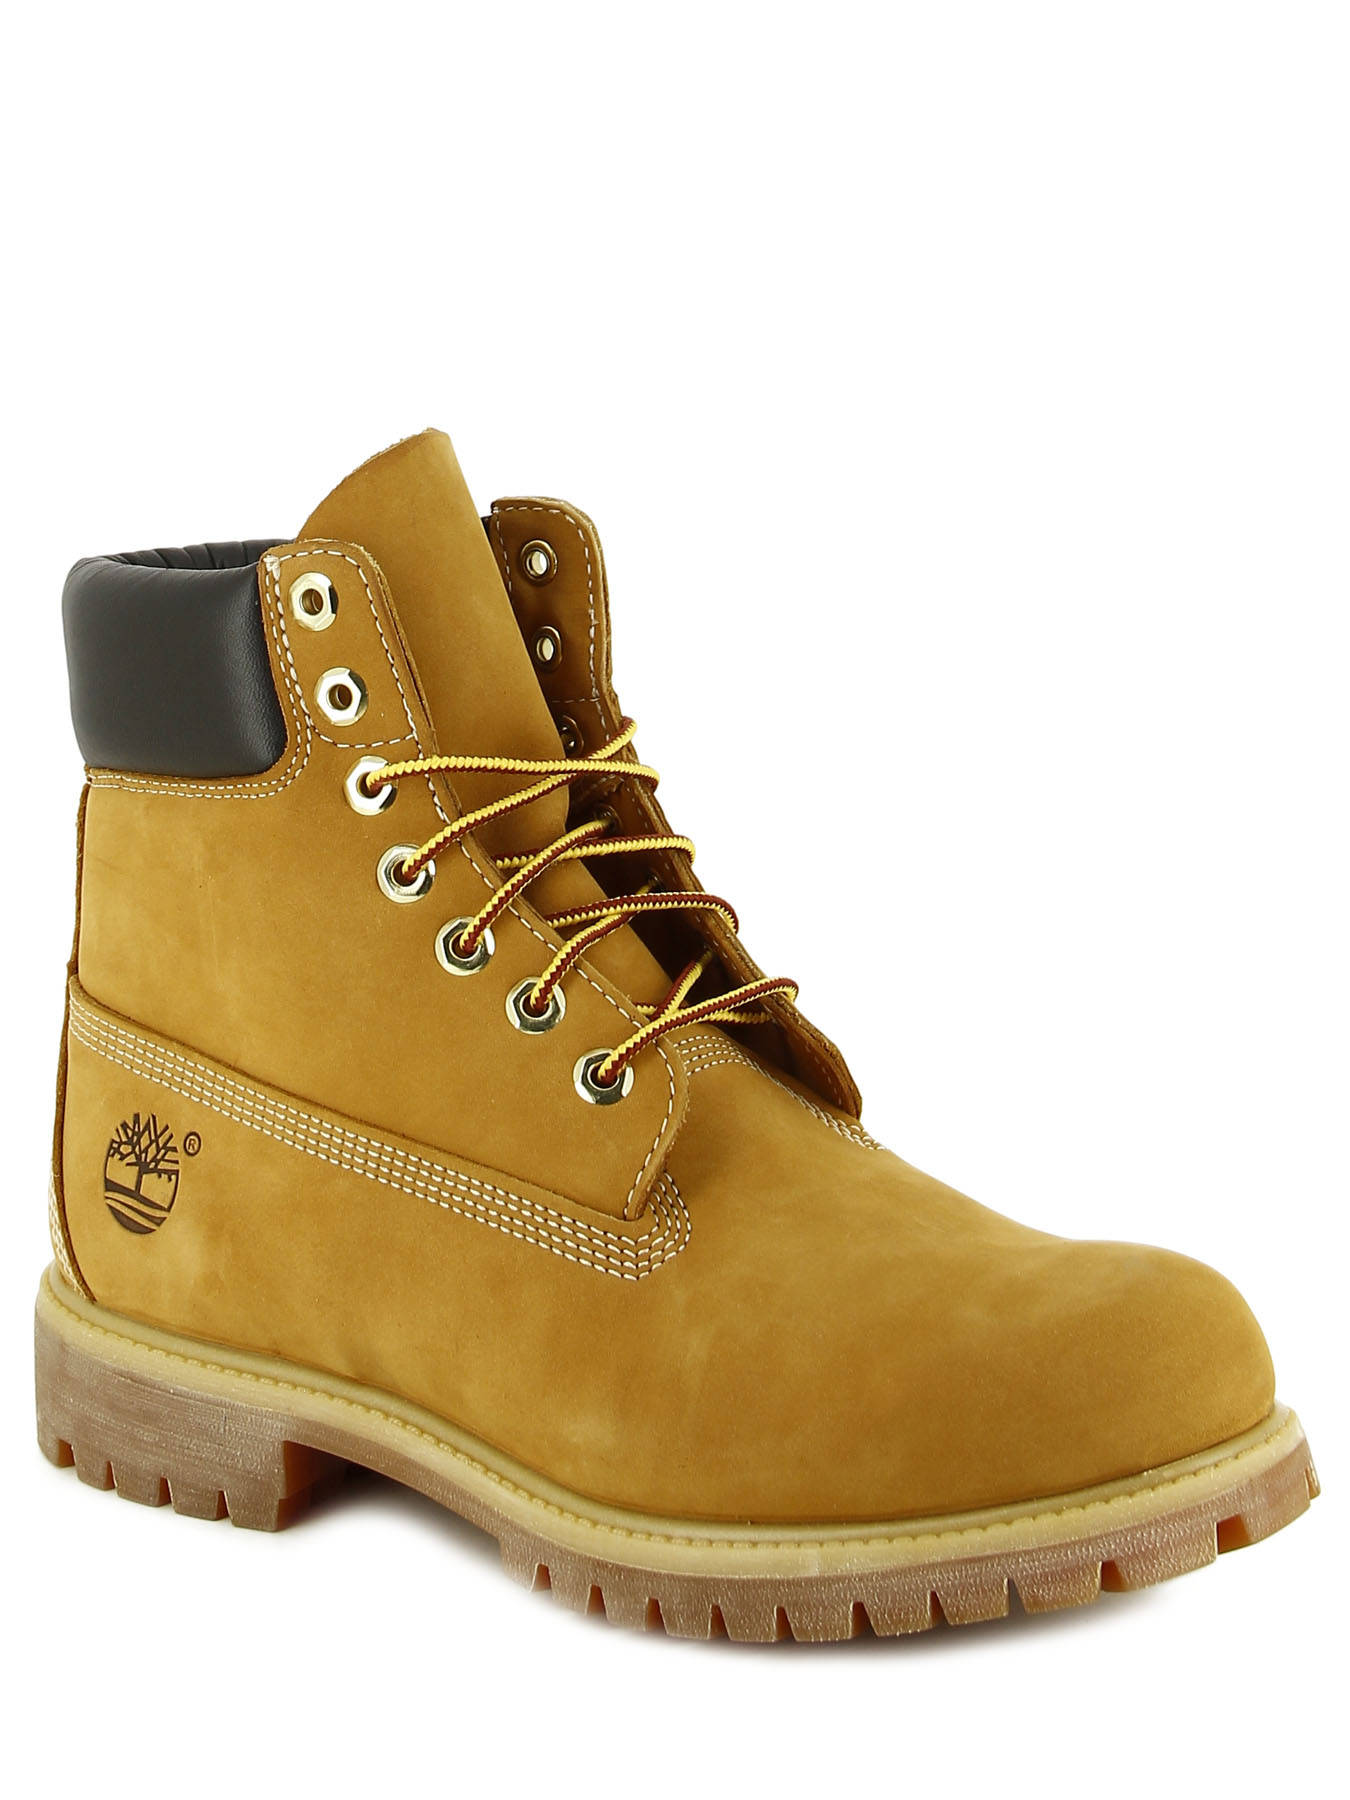 8ade71f26ce4 ... 6 Premium Boot Timberland Beige boots   bottines C10061 ...